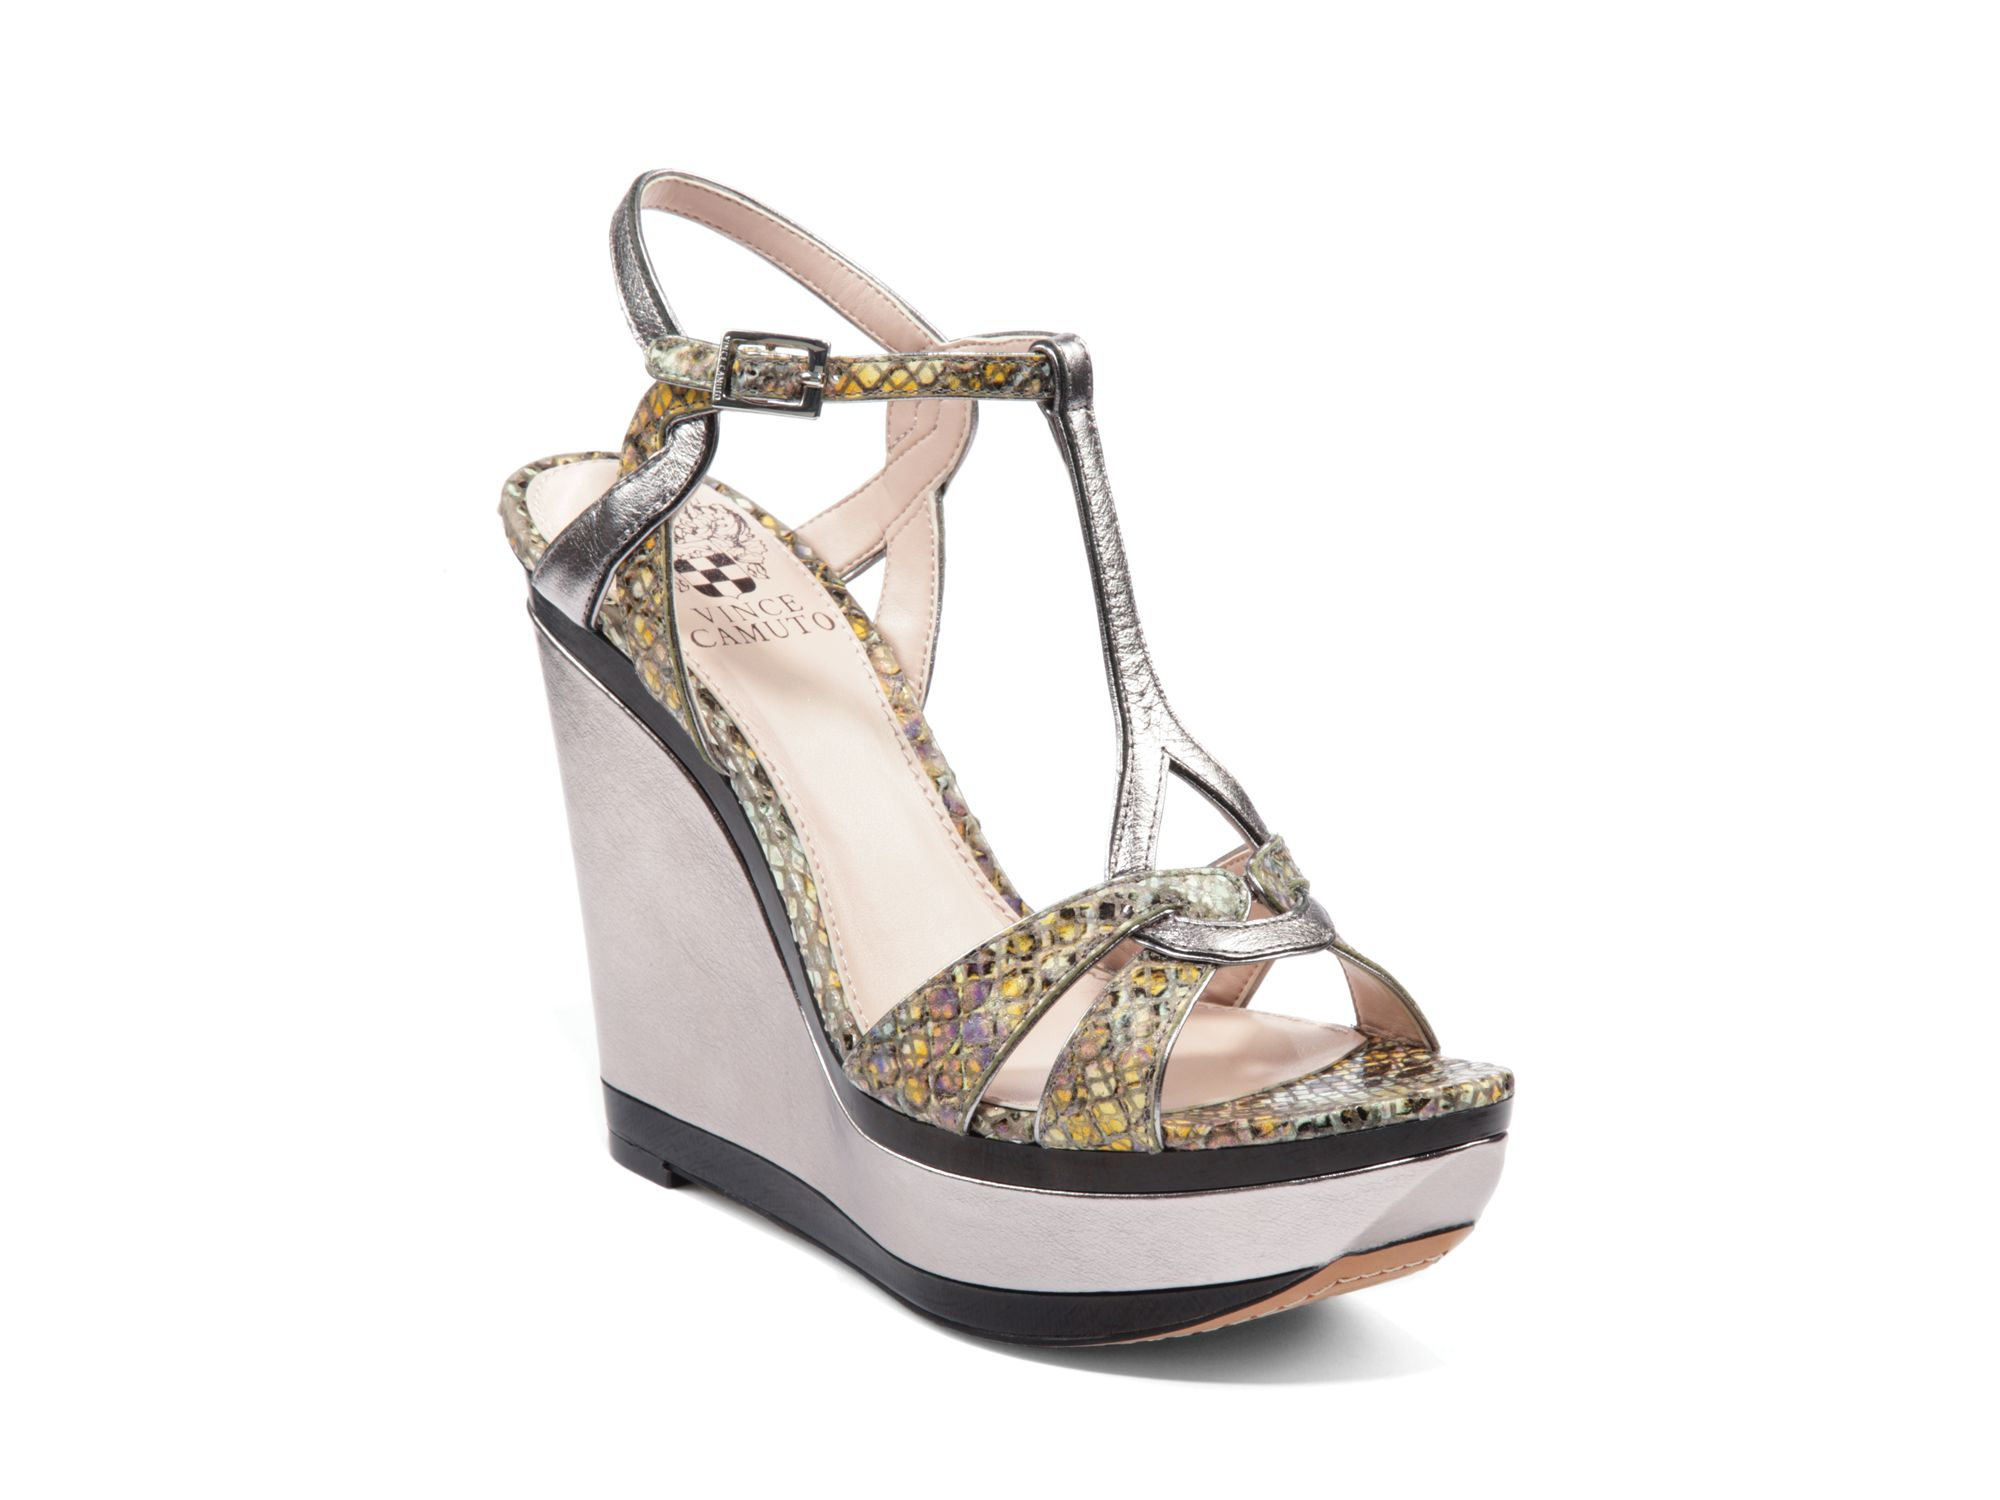 Vince Camuto Exotic Platform Wedge Sandals Casidy In Beige